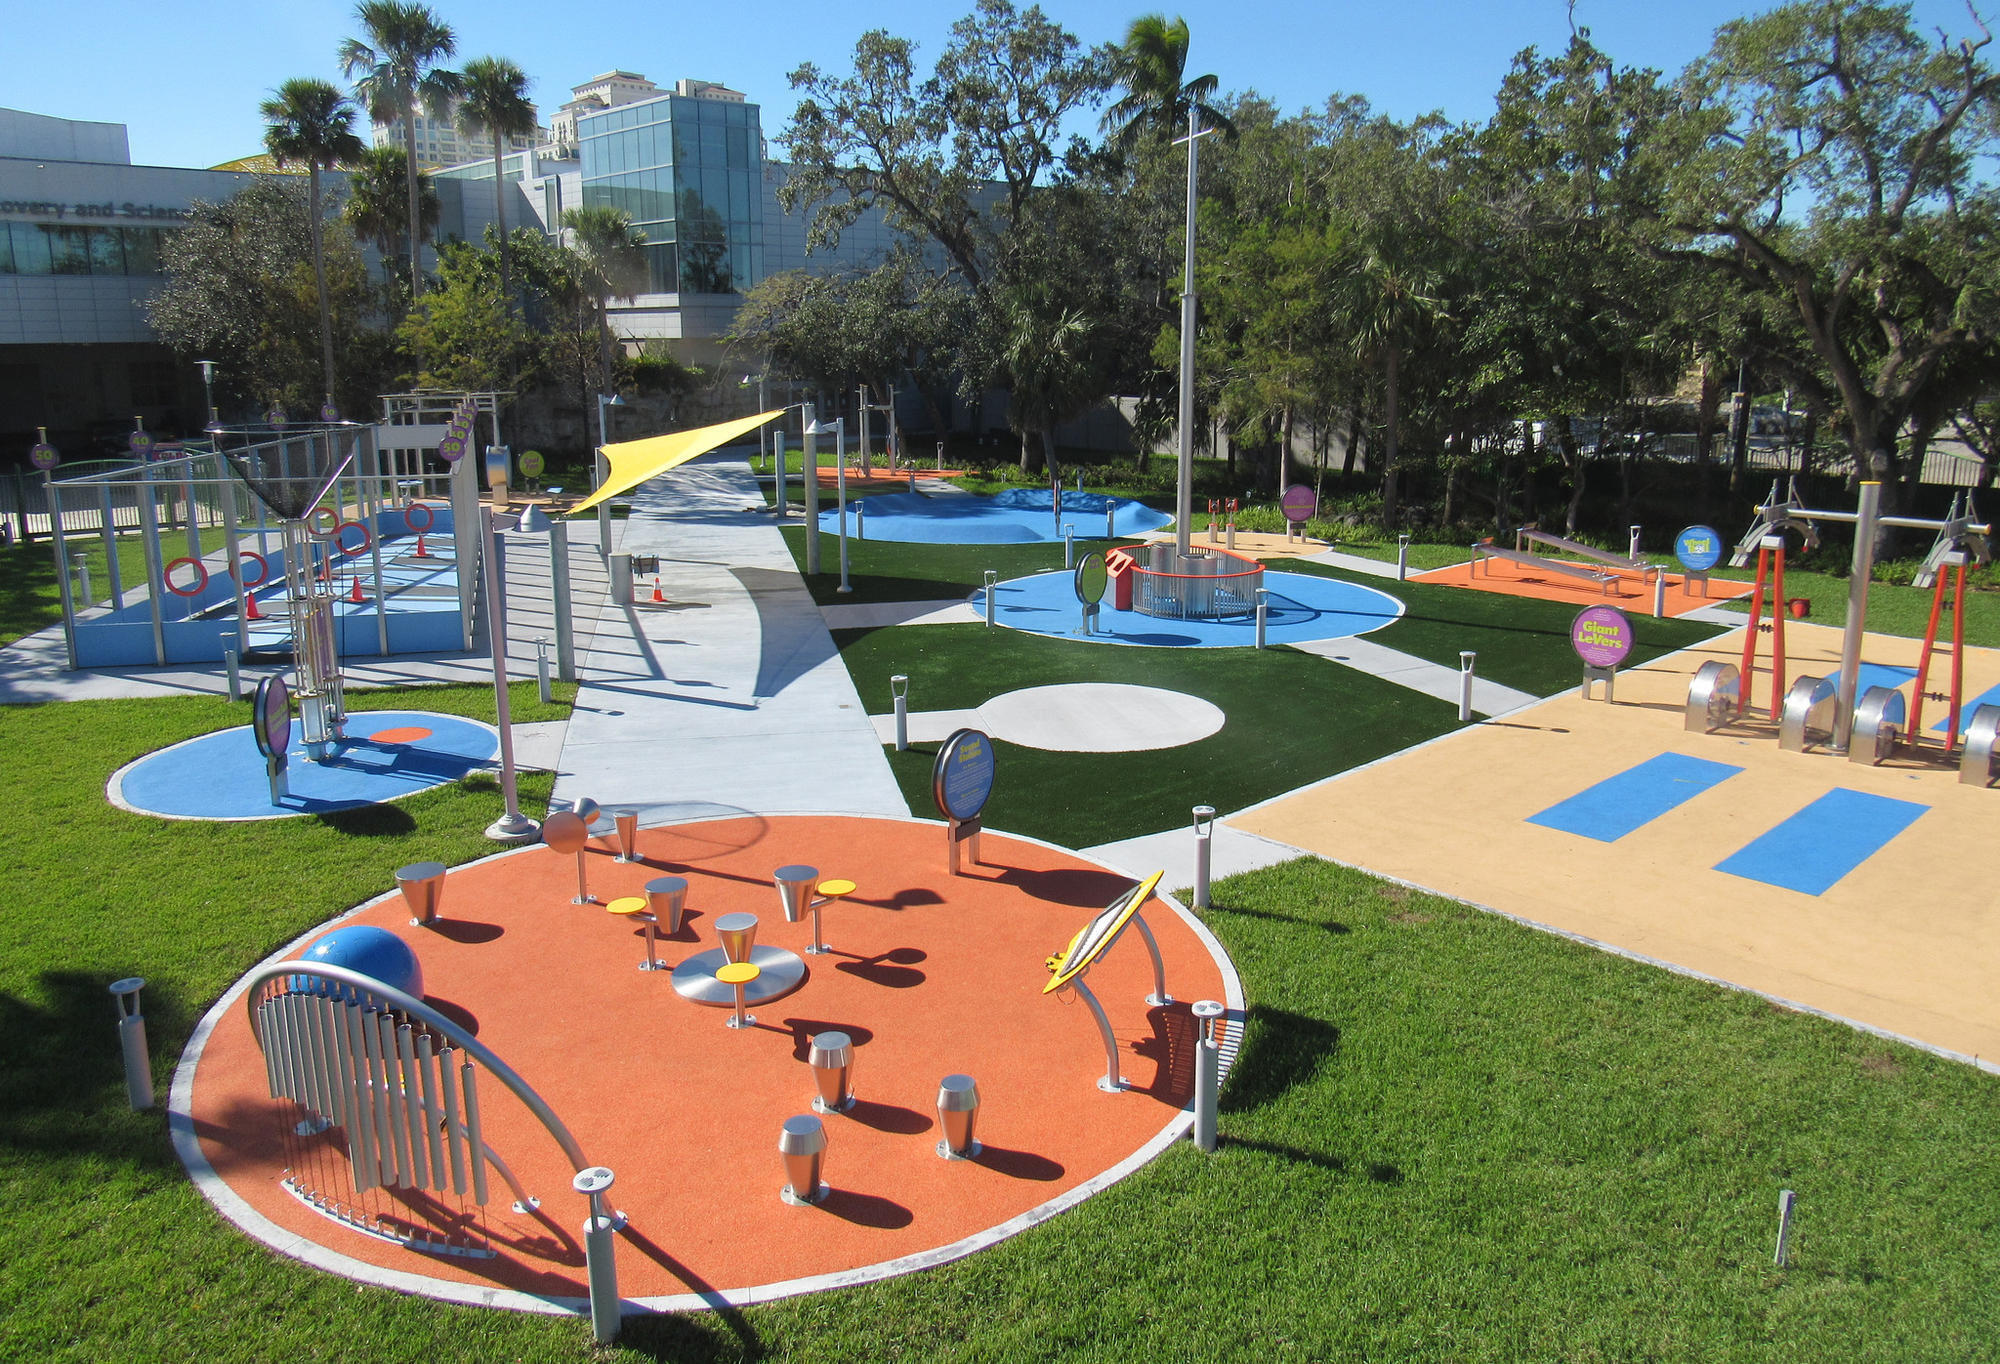 Science Park Takes Adventure Outside At Fort Lauderdale U0026 39 S